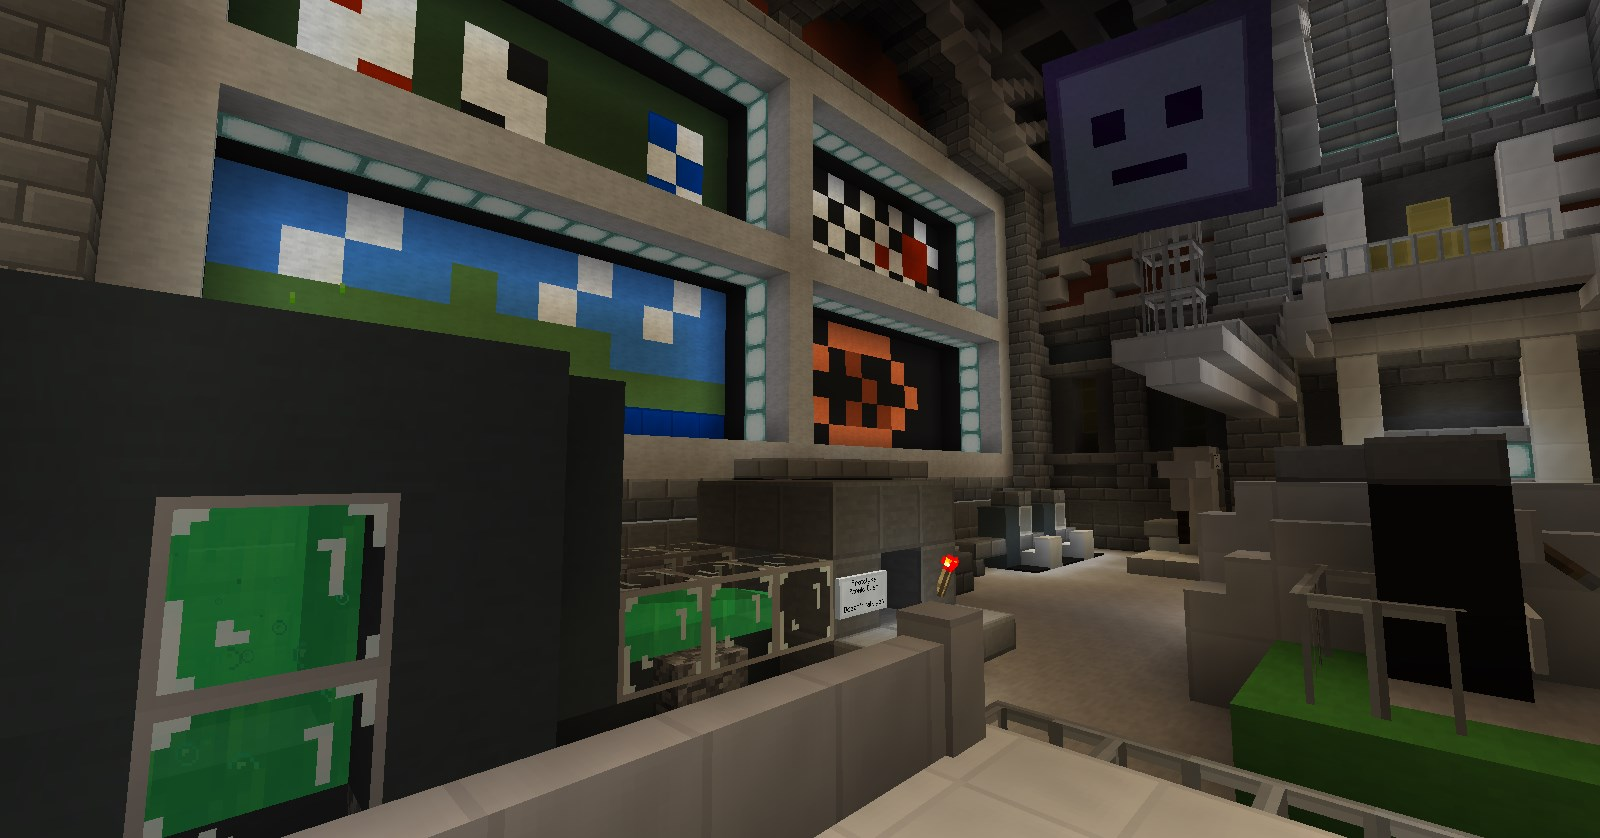 The Genius Machine is an interactive Minecraft story